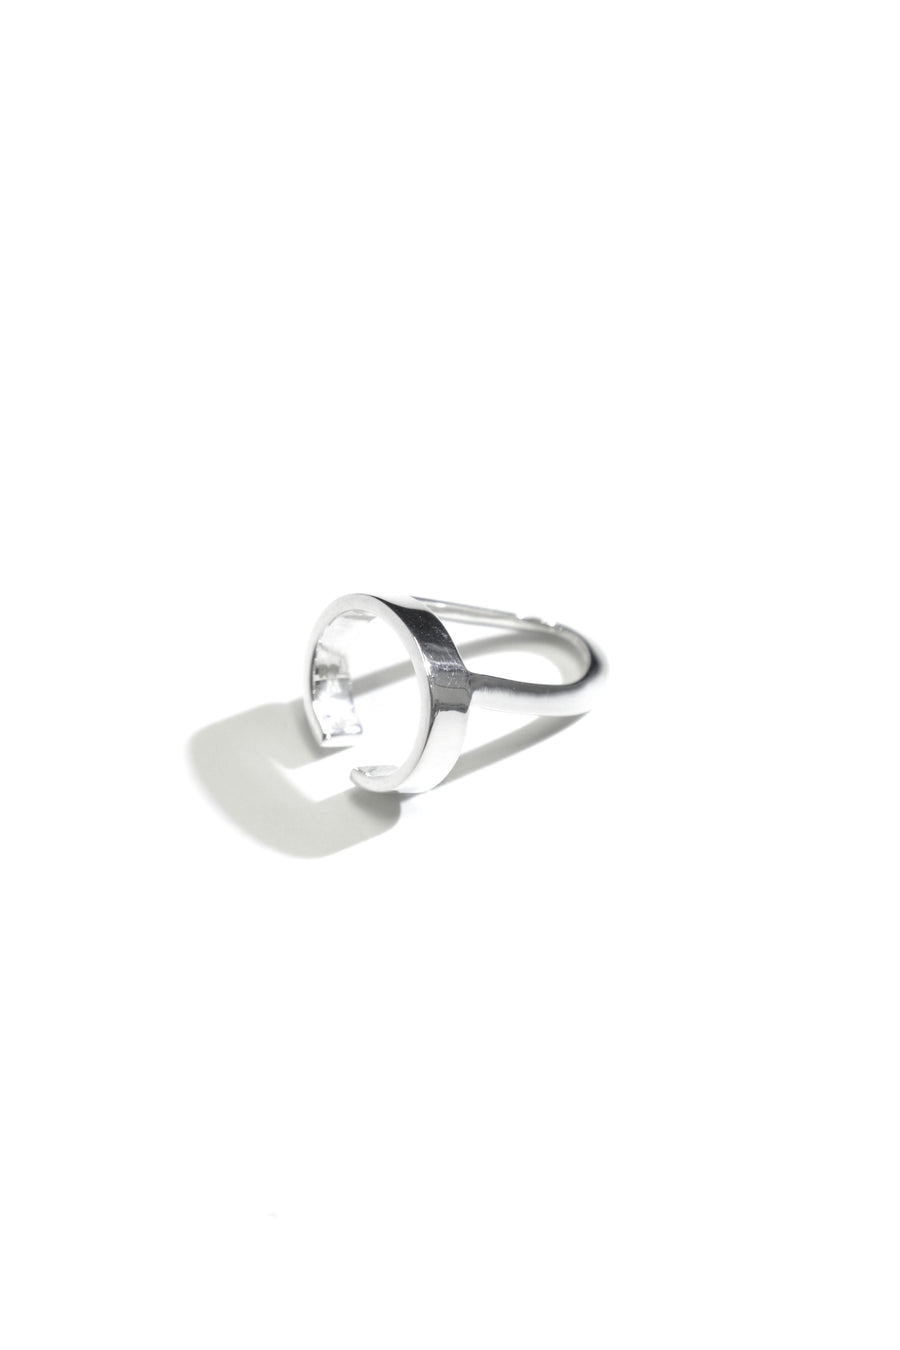 RATHEL & WOLF  SIMONE ring (SILVER)